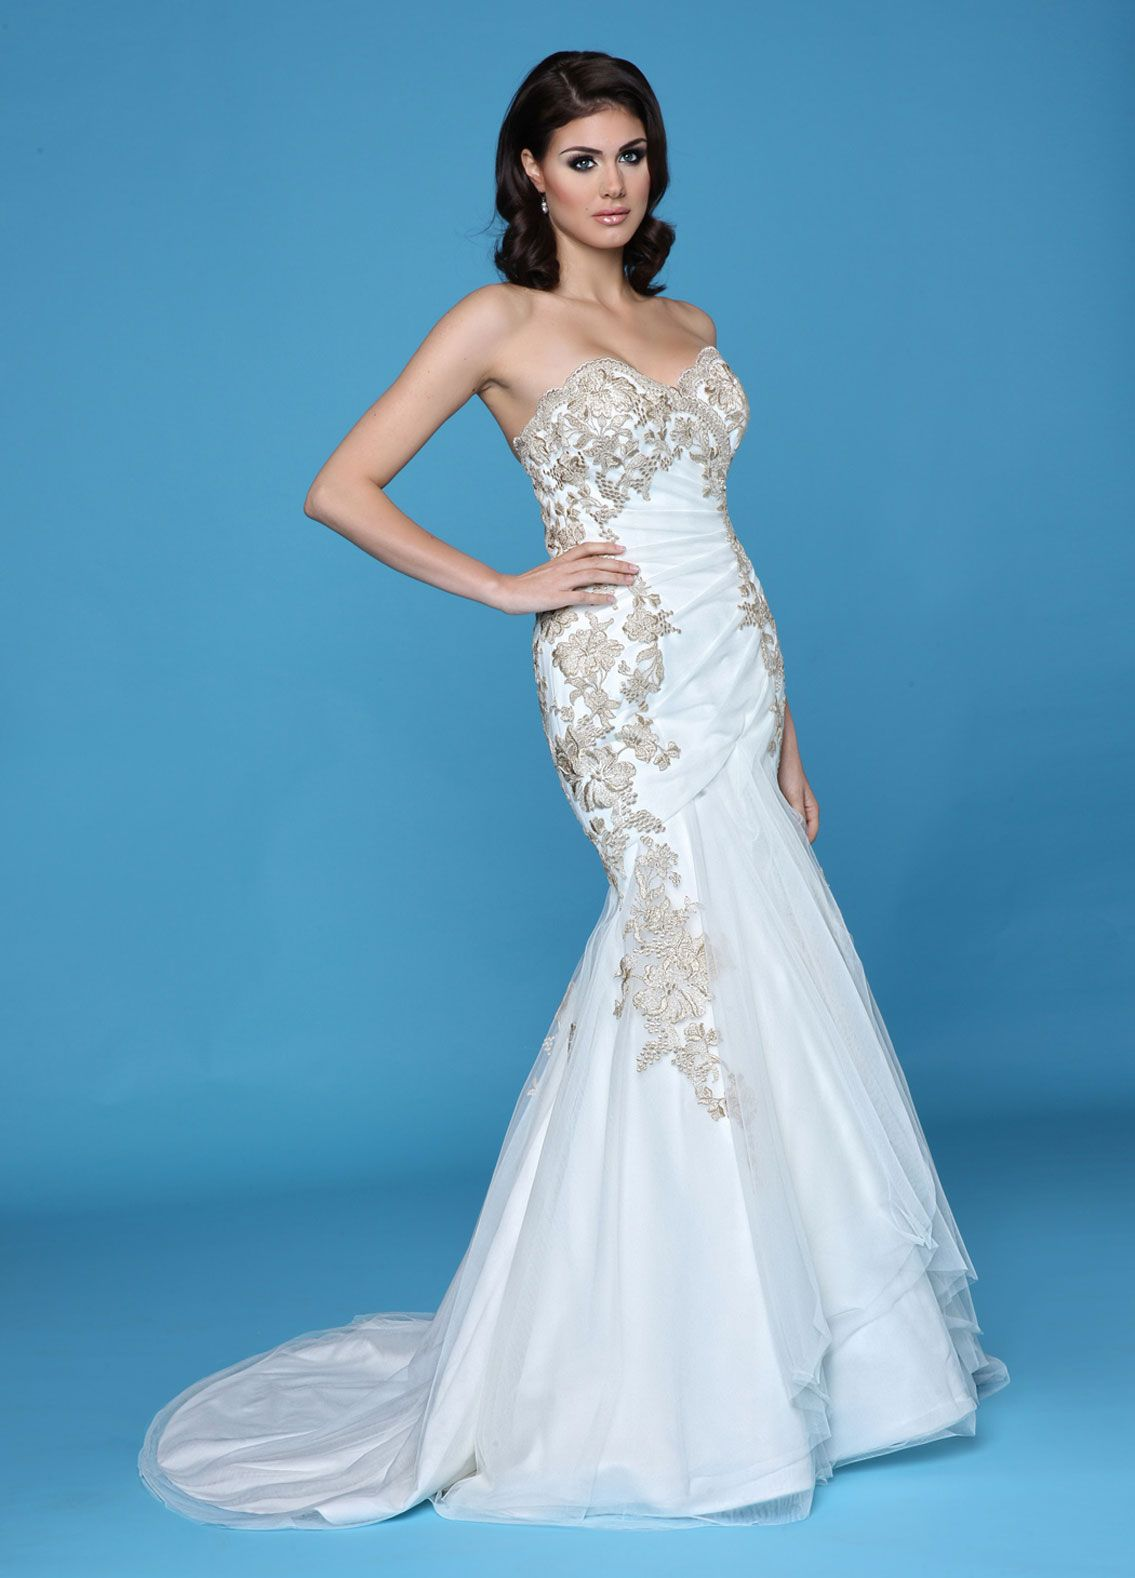 100+ Wedding Dress Stores In San Antonio Tx - Country Dresses for ...